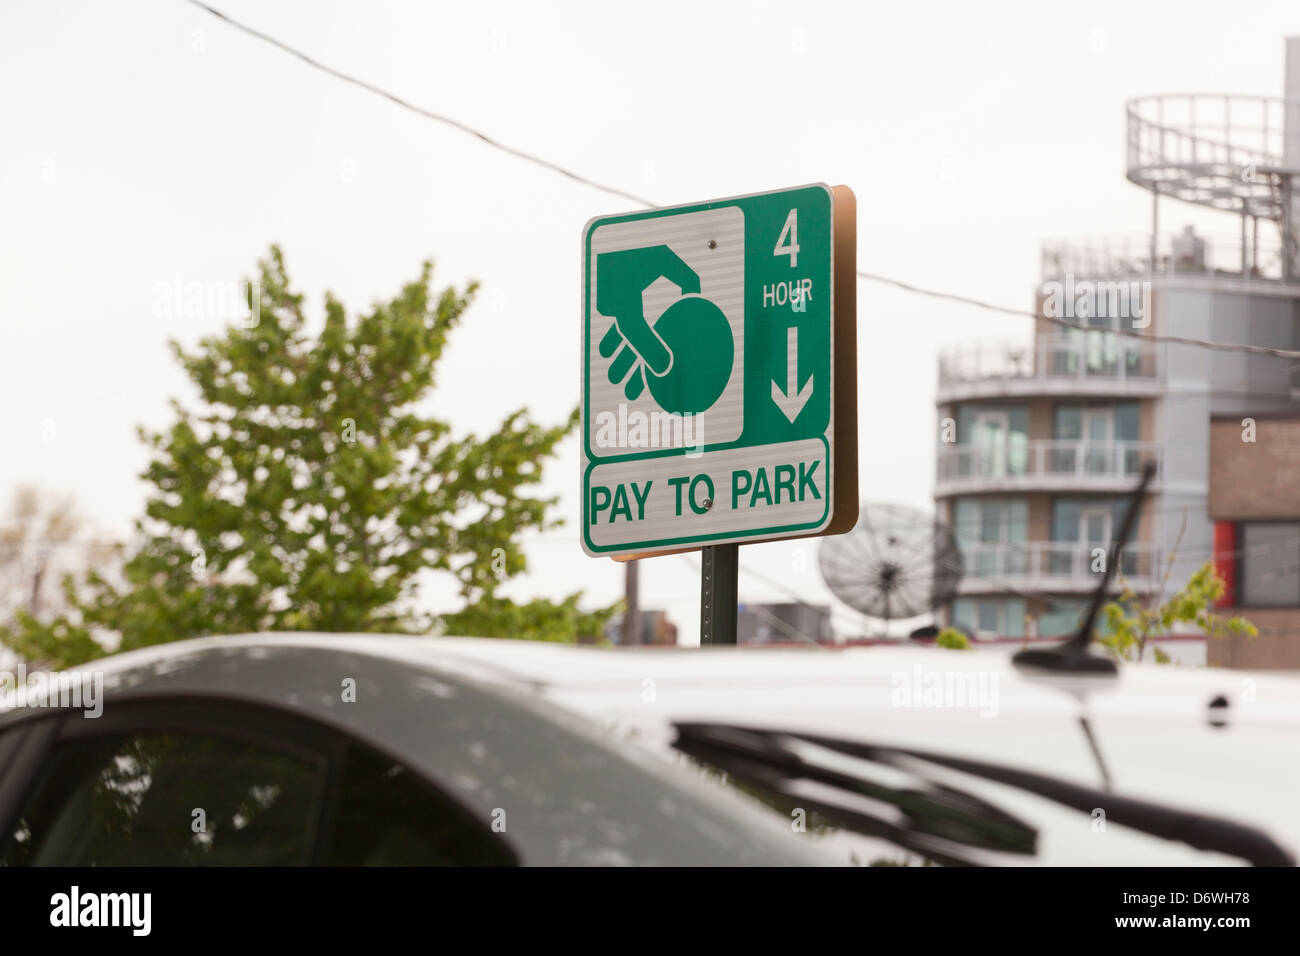 Payer à Park sign Photo Stock